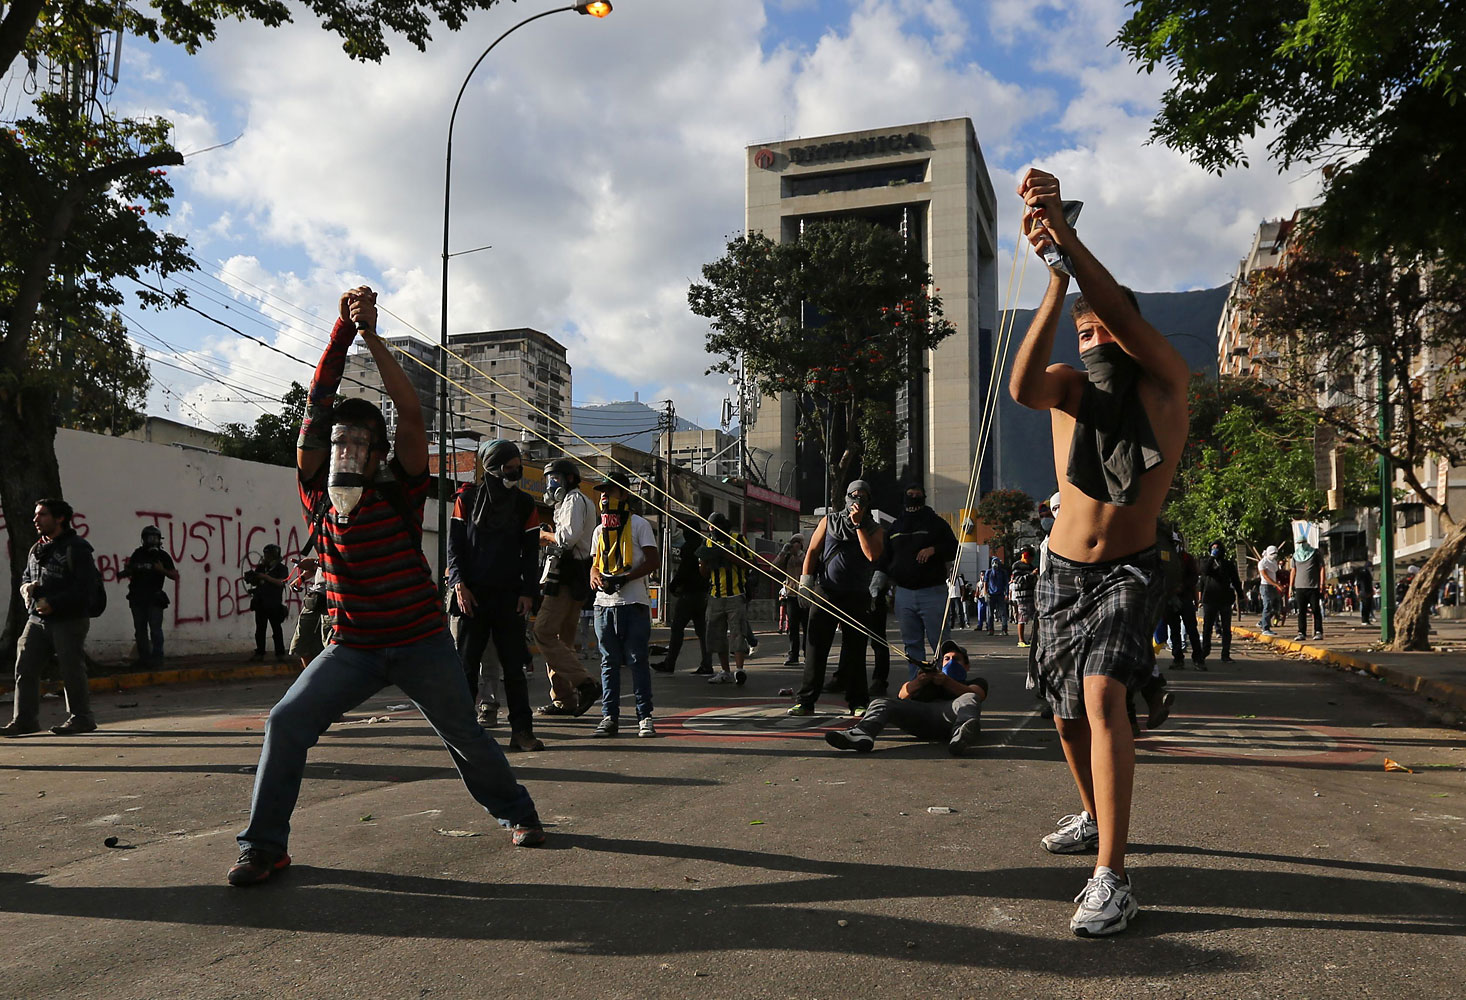 Demonstrators use a giant slingshot to launch stones at Bolivarian National Guards during clashes in Caracas, March 2, 2014.